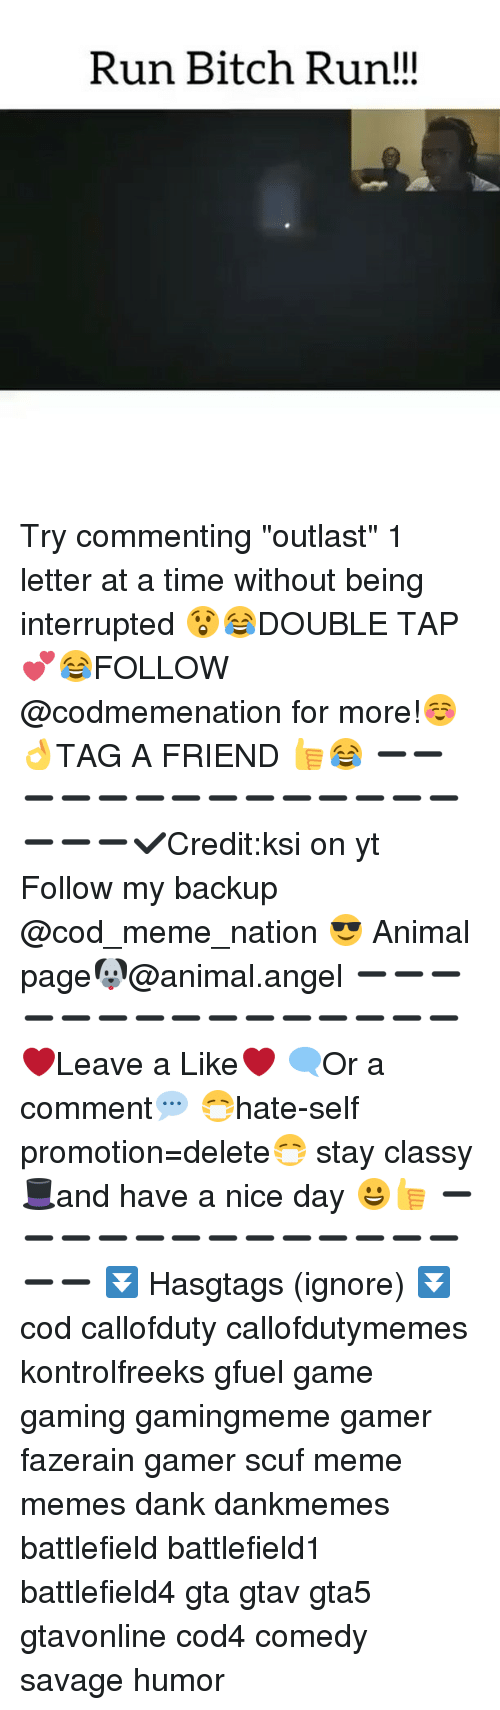 """run bitch run: Run Bitch Run!!! Try commenting """"outlast"""" 1 letter at a time without being interrupted 😲😂☟DOUBLE TAP 💕😂FOLLOW @codmemenation for more!☺👌TAG A FRIEND 👍😂 ➖➖➖➖➖➖➖➖➖➖➖➖➖➖➖➖➖✔Credit:ksi on yt Follow my backup @cod_meme_nation 😎 Animal page🐶@animal.angel ➖➖➖➖➖➖➖➖➖➖➖➖➖➖➖ ❤Leave a Like❤ 🗨Or a comment💬 😷hate-self promotion=delete😷 stay classy 🎩and have a nice day 😀👍 ➖➖➖➖➖➖➖➖➖➖➖➖➖➖➖ ⏬ Hasgtags (ignore) ⏬ cod callofduty callofdutymemes kontrolfreeks gfuel game gaming gamingmeme gamer fazerain gamer scuf meme memes dank dankmemes battlefield battlefield1 battlefield4 gta gtav gta5 gtavonline cod4 comedy savage humor"""